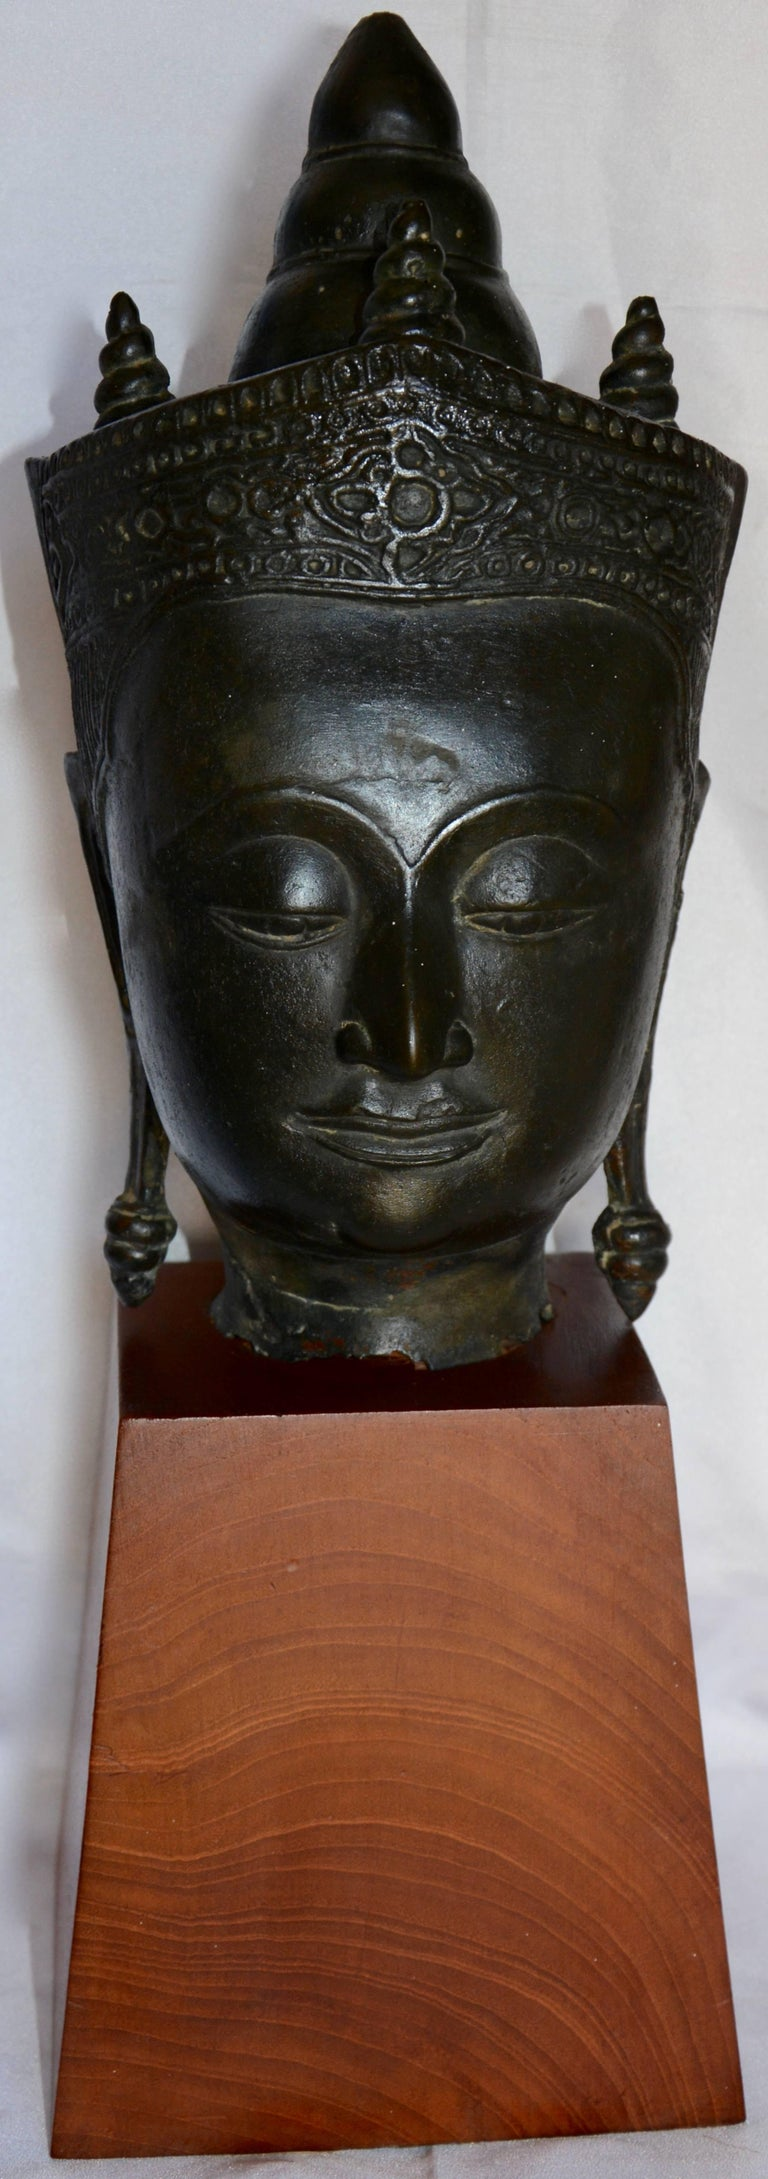 Featured is a fabulous cast bronze Thai Buddha bust statue mounted on a wooden base. It has the features of a traditionally designed Buddha statue, including stylized crown and elongated earlobes. The bronze head is hollow, and the neck fits over a